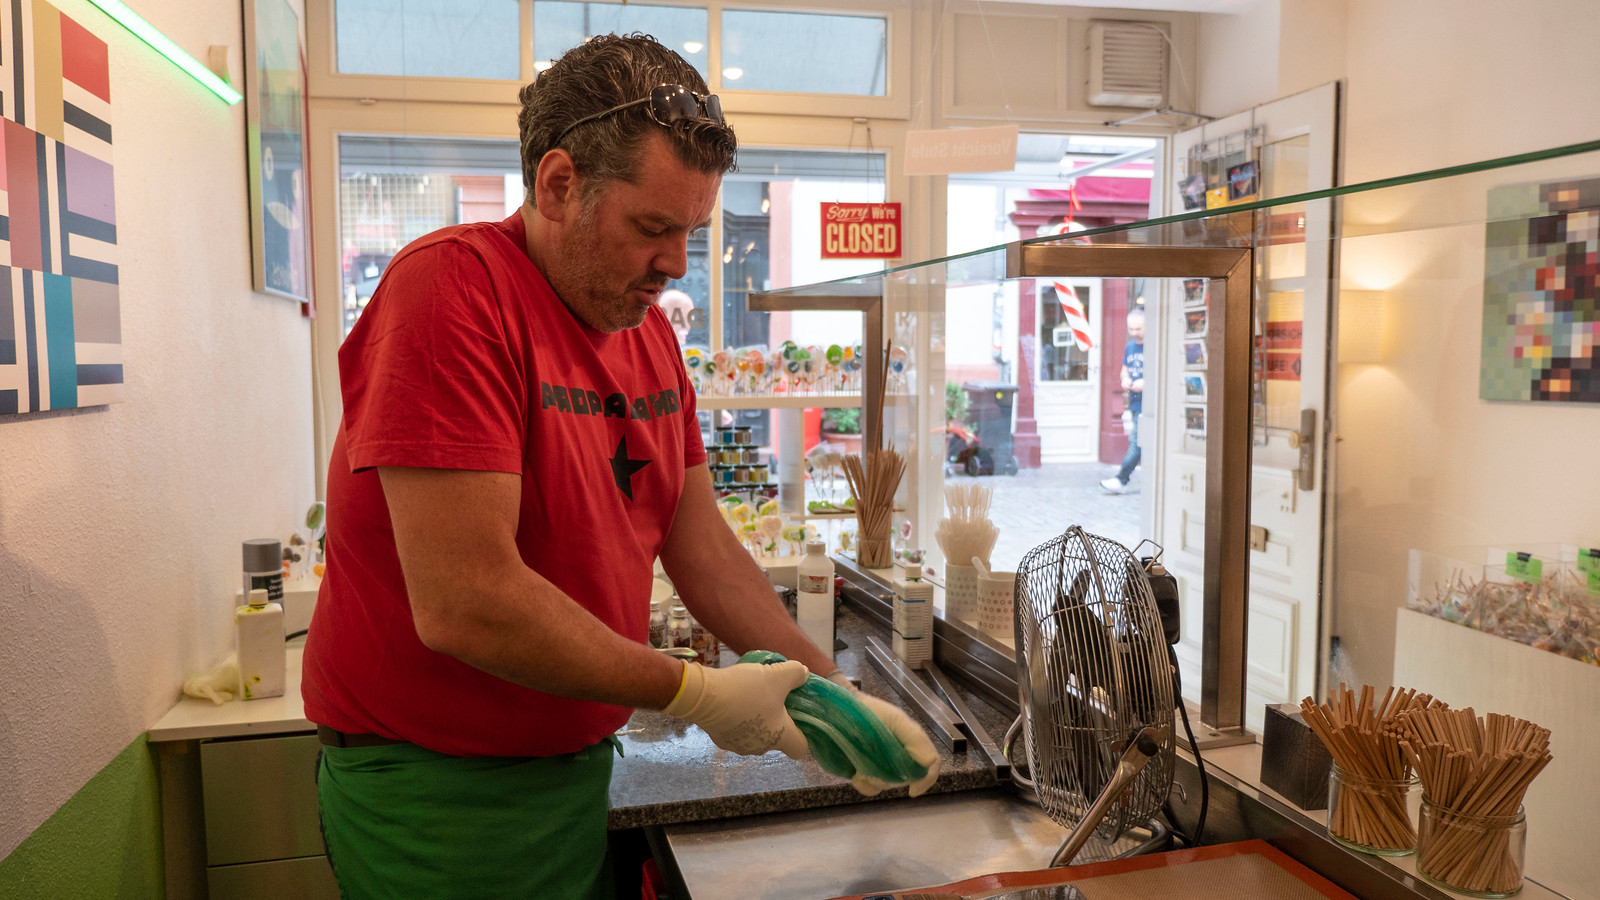 Spectacular Things to Do in Heidelberg Germany - Making candy at Heidelbonbon